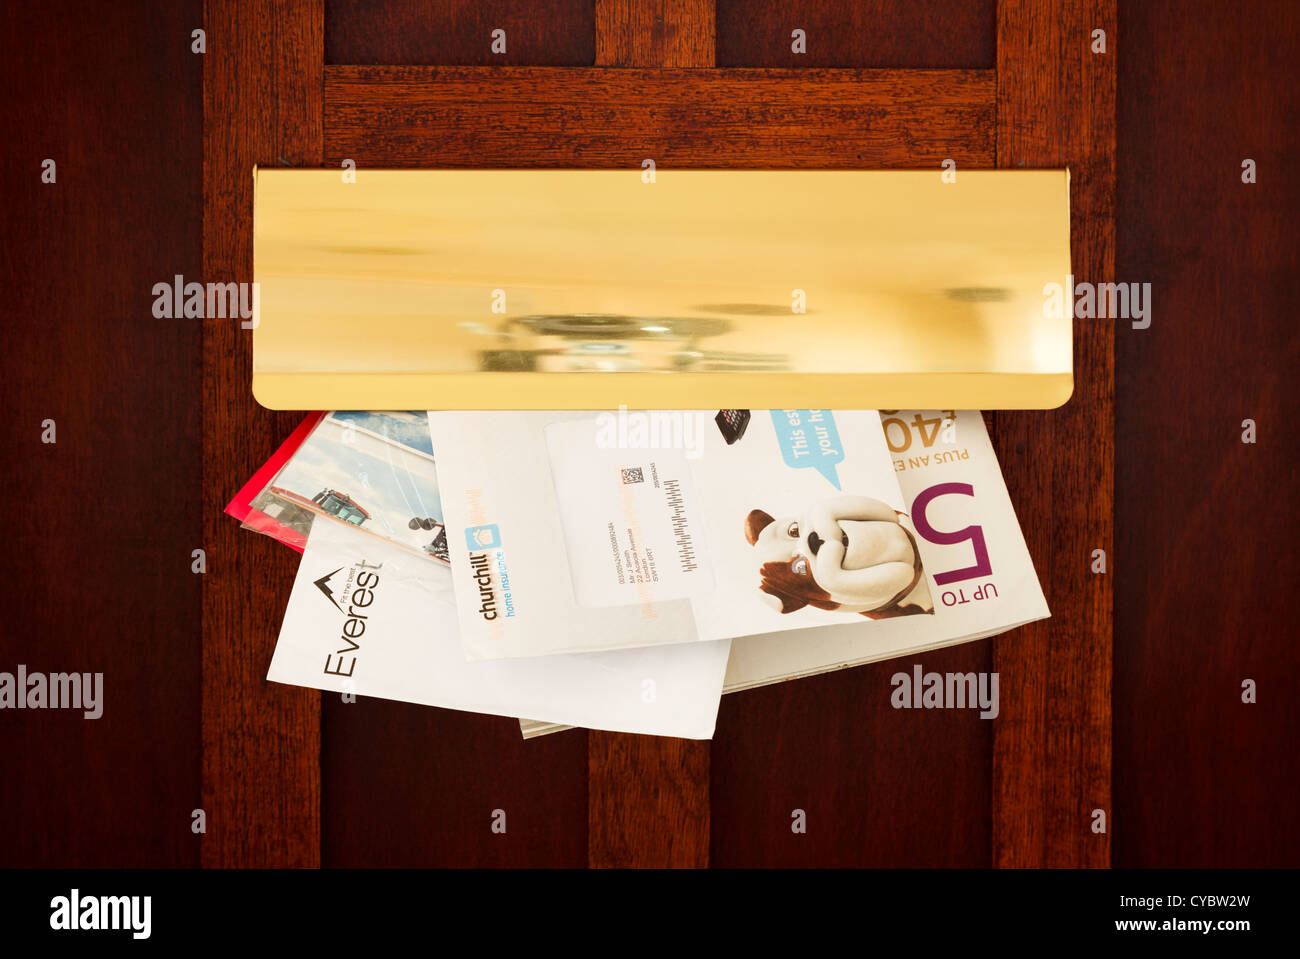 Letters and junk mail coming through a letter box uk details letters and junk mail coming through a letter box uk details changed for security spiritdancerdesigns Images